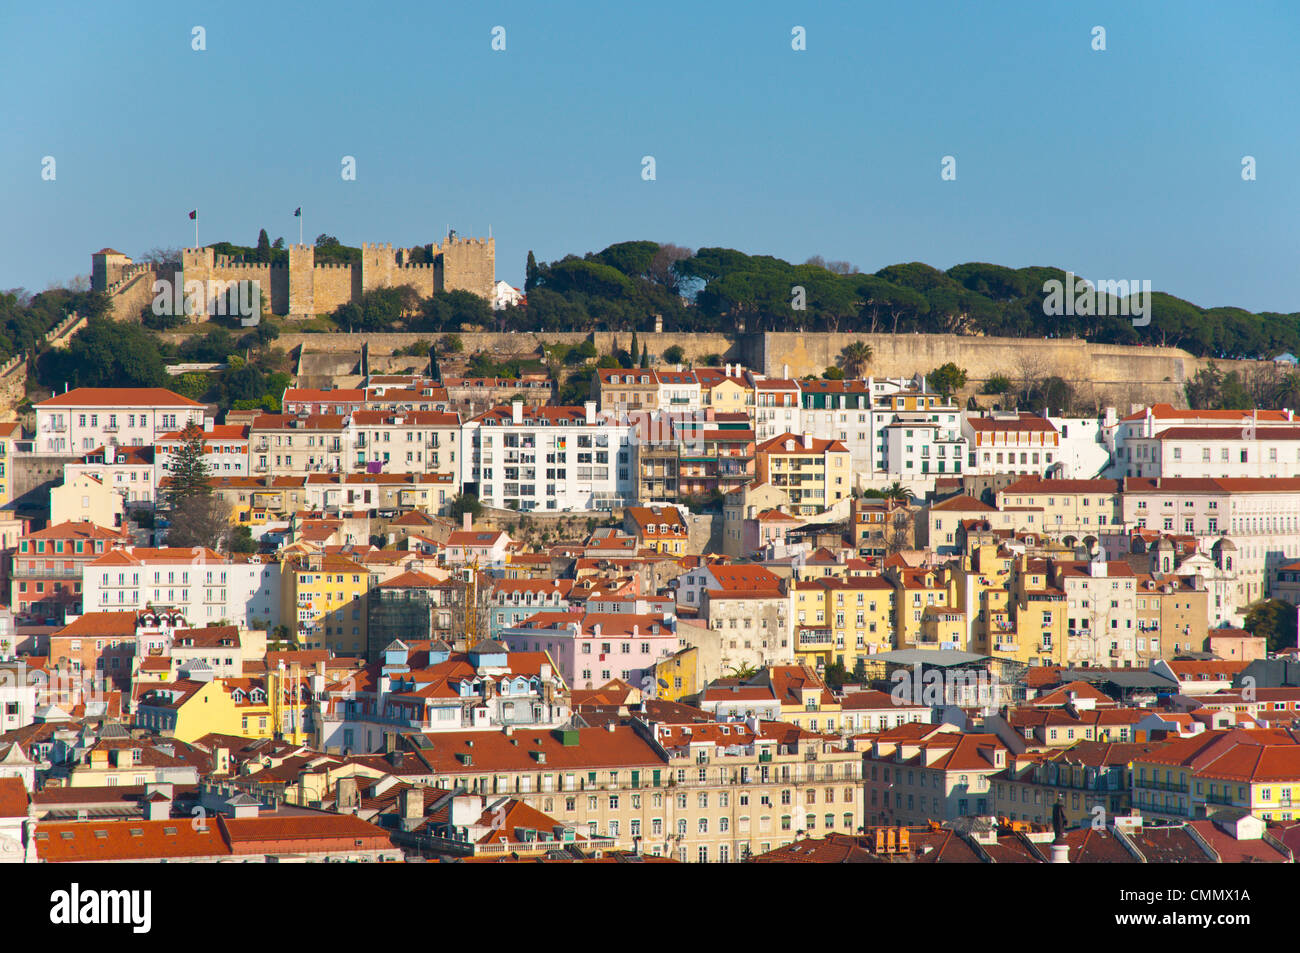 Baixa and Alfama district with Castelo de Sao Jorge fortress central Lisbon Portugal Europe - Stock Image